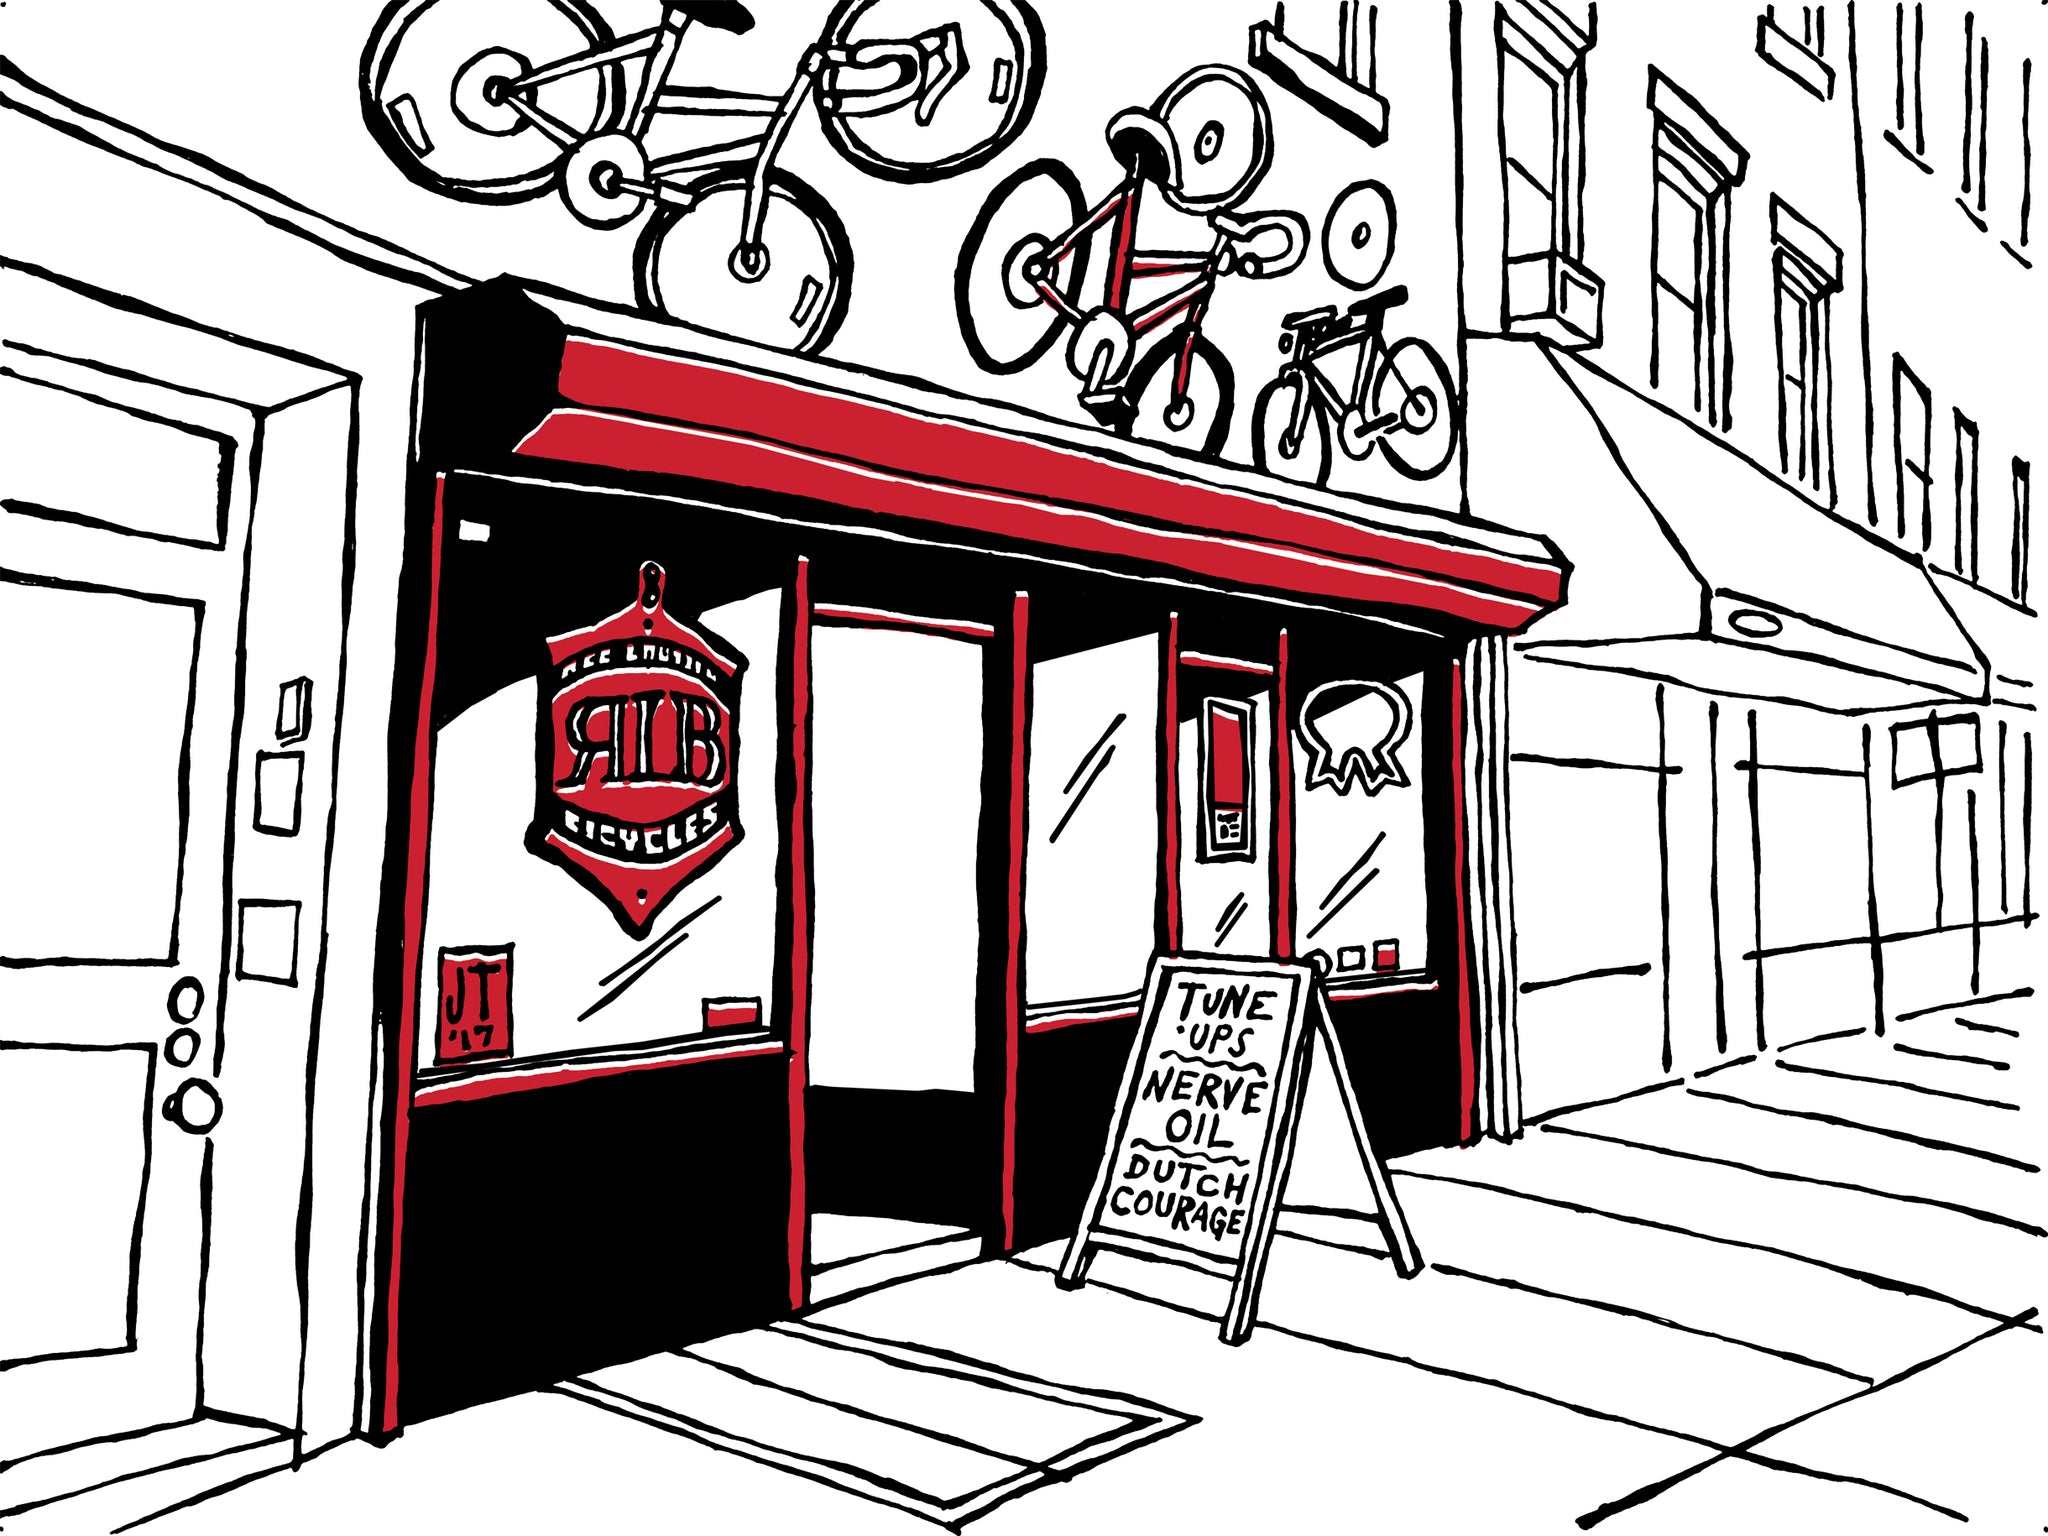 red lantern bicycles brooklyn nyc art by john tebeau